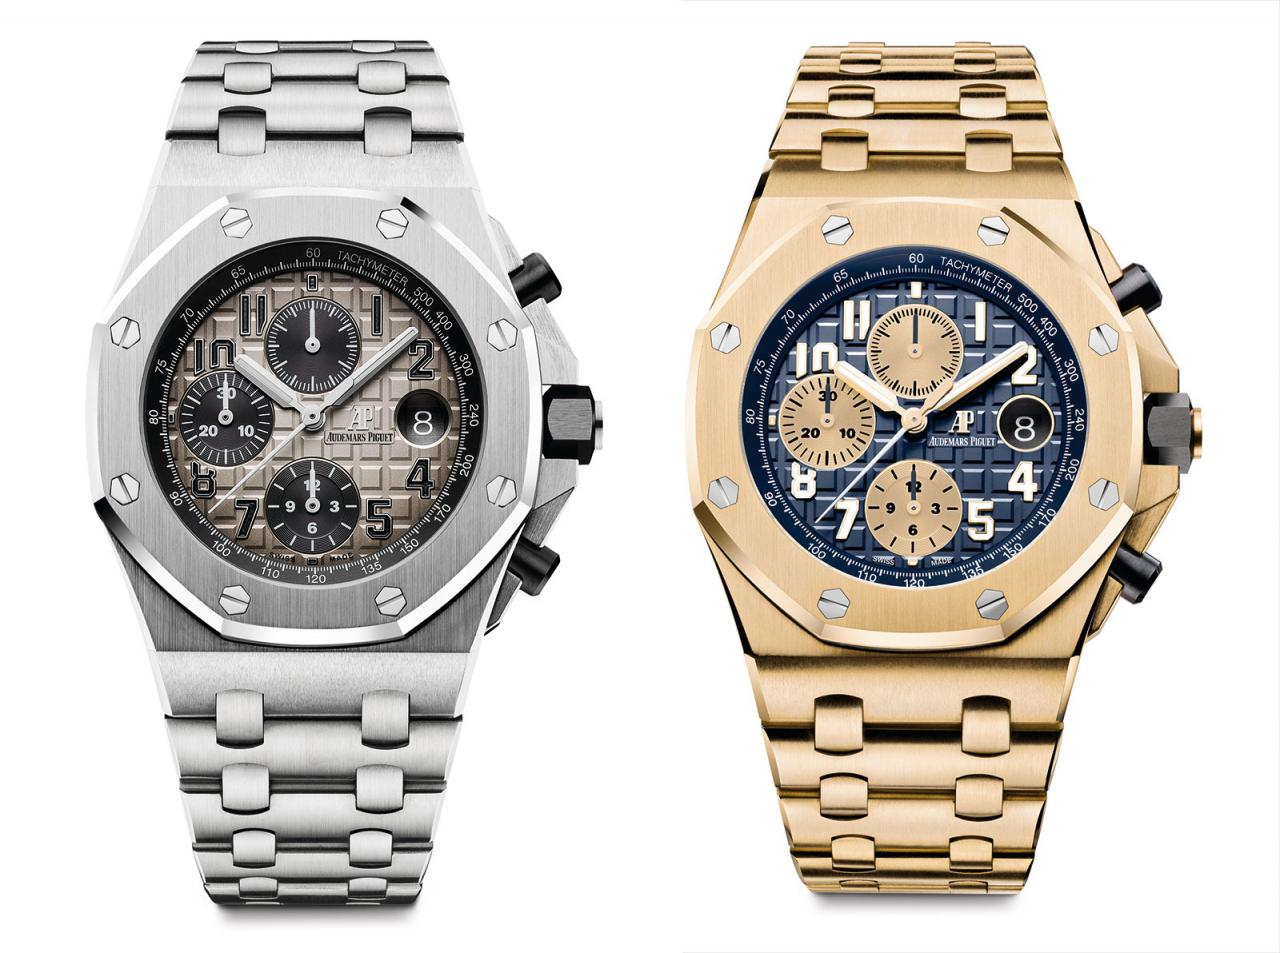 Audemars Piguet Royal Oak Offshore pink gold and platinum